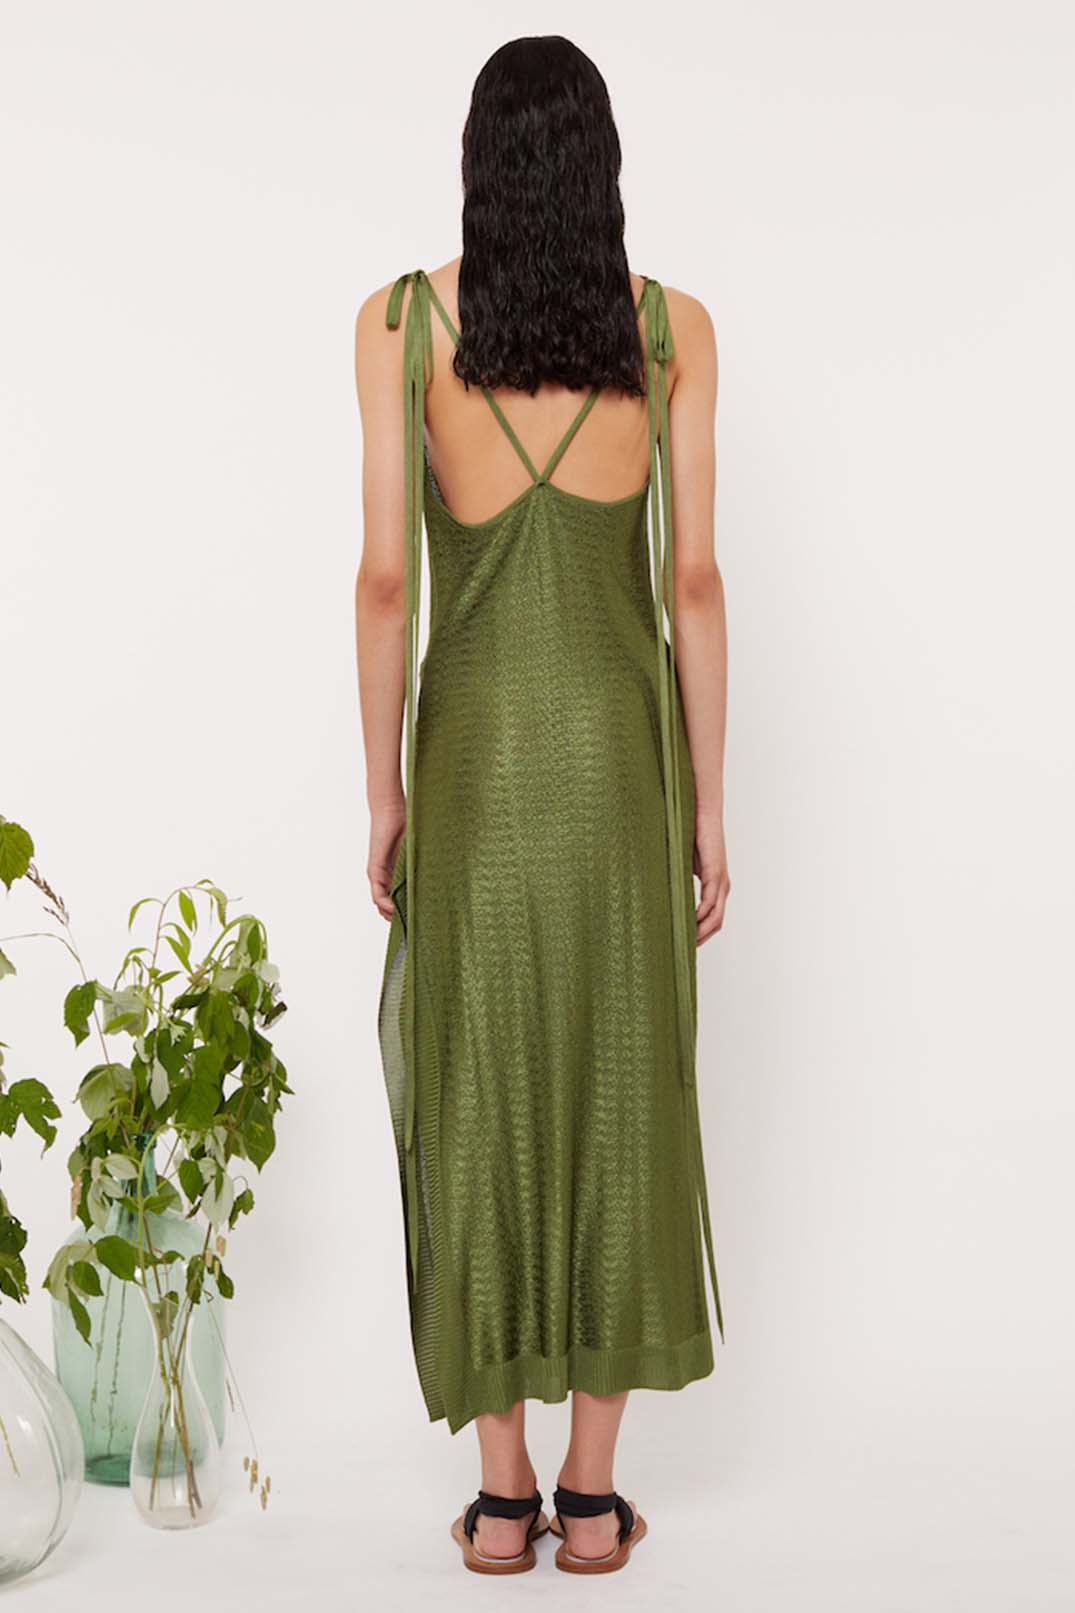 KNIT SHOULDER TIE DRESS - Esteban Cortazar